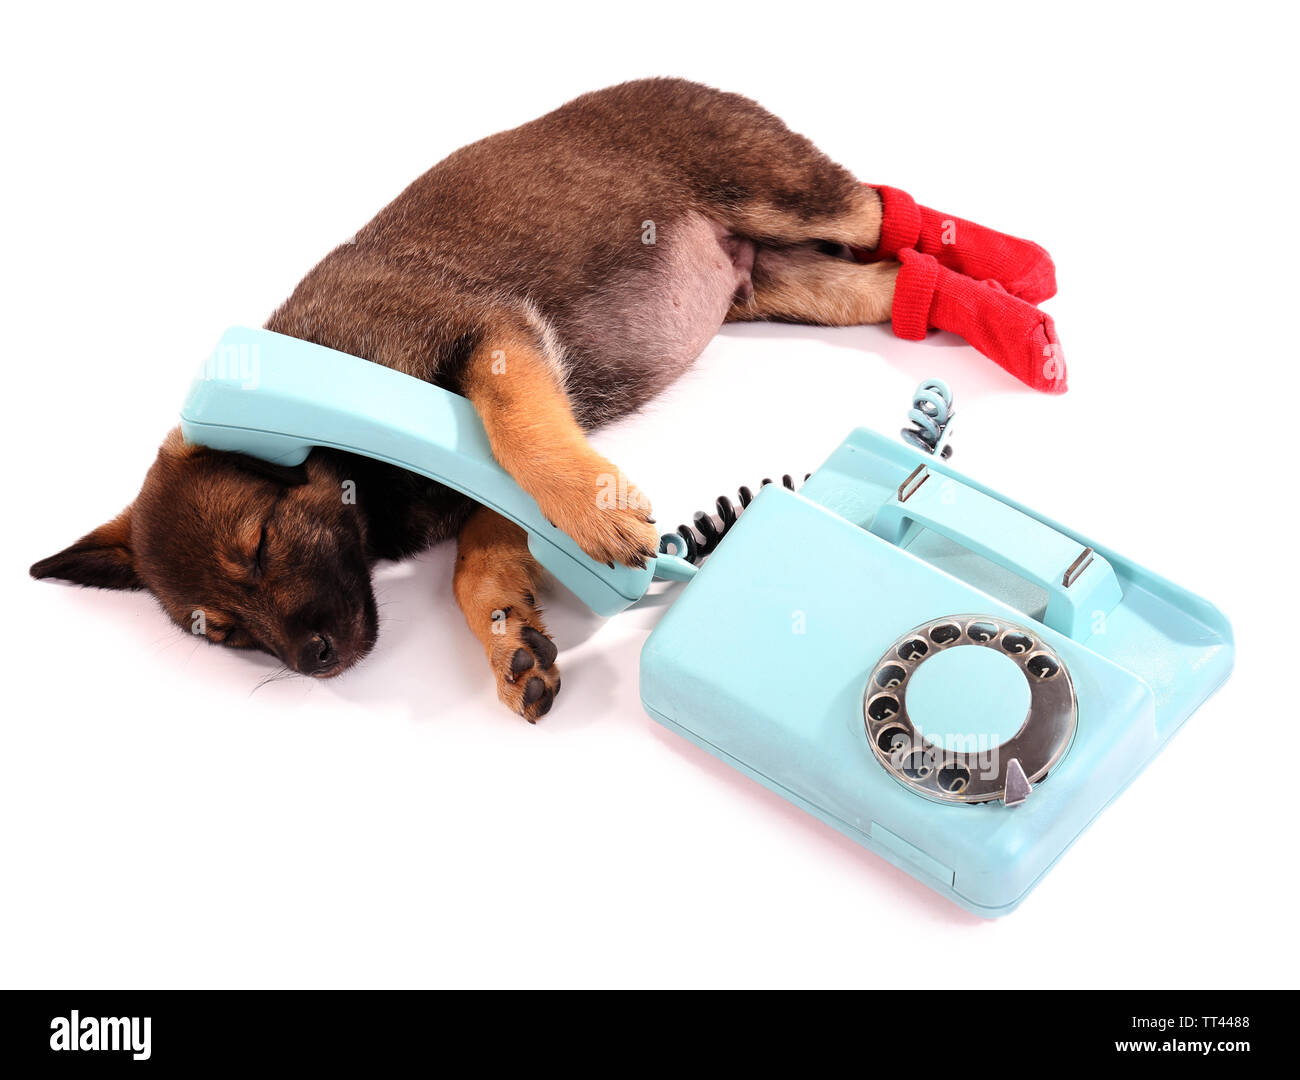 Sleeping puppy in red socks and blue phone isolated on white - Stock Image